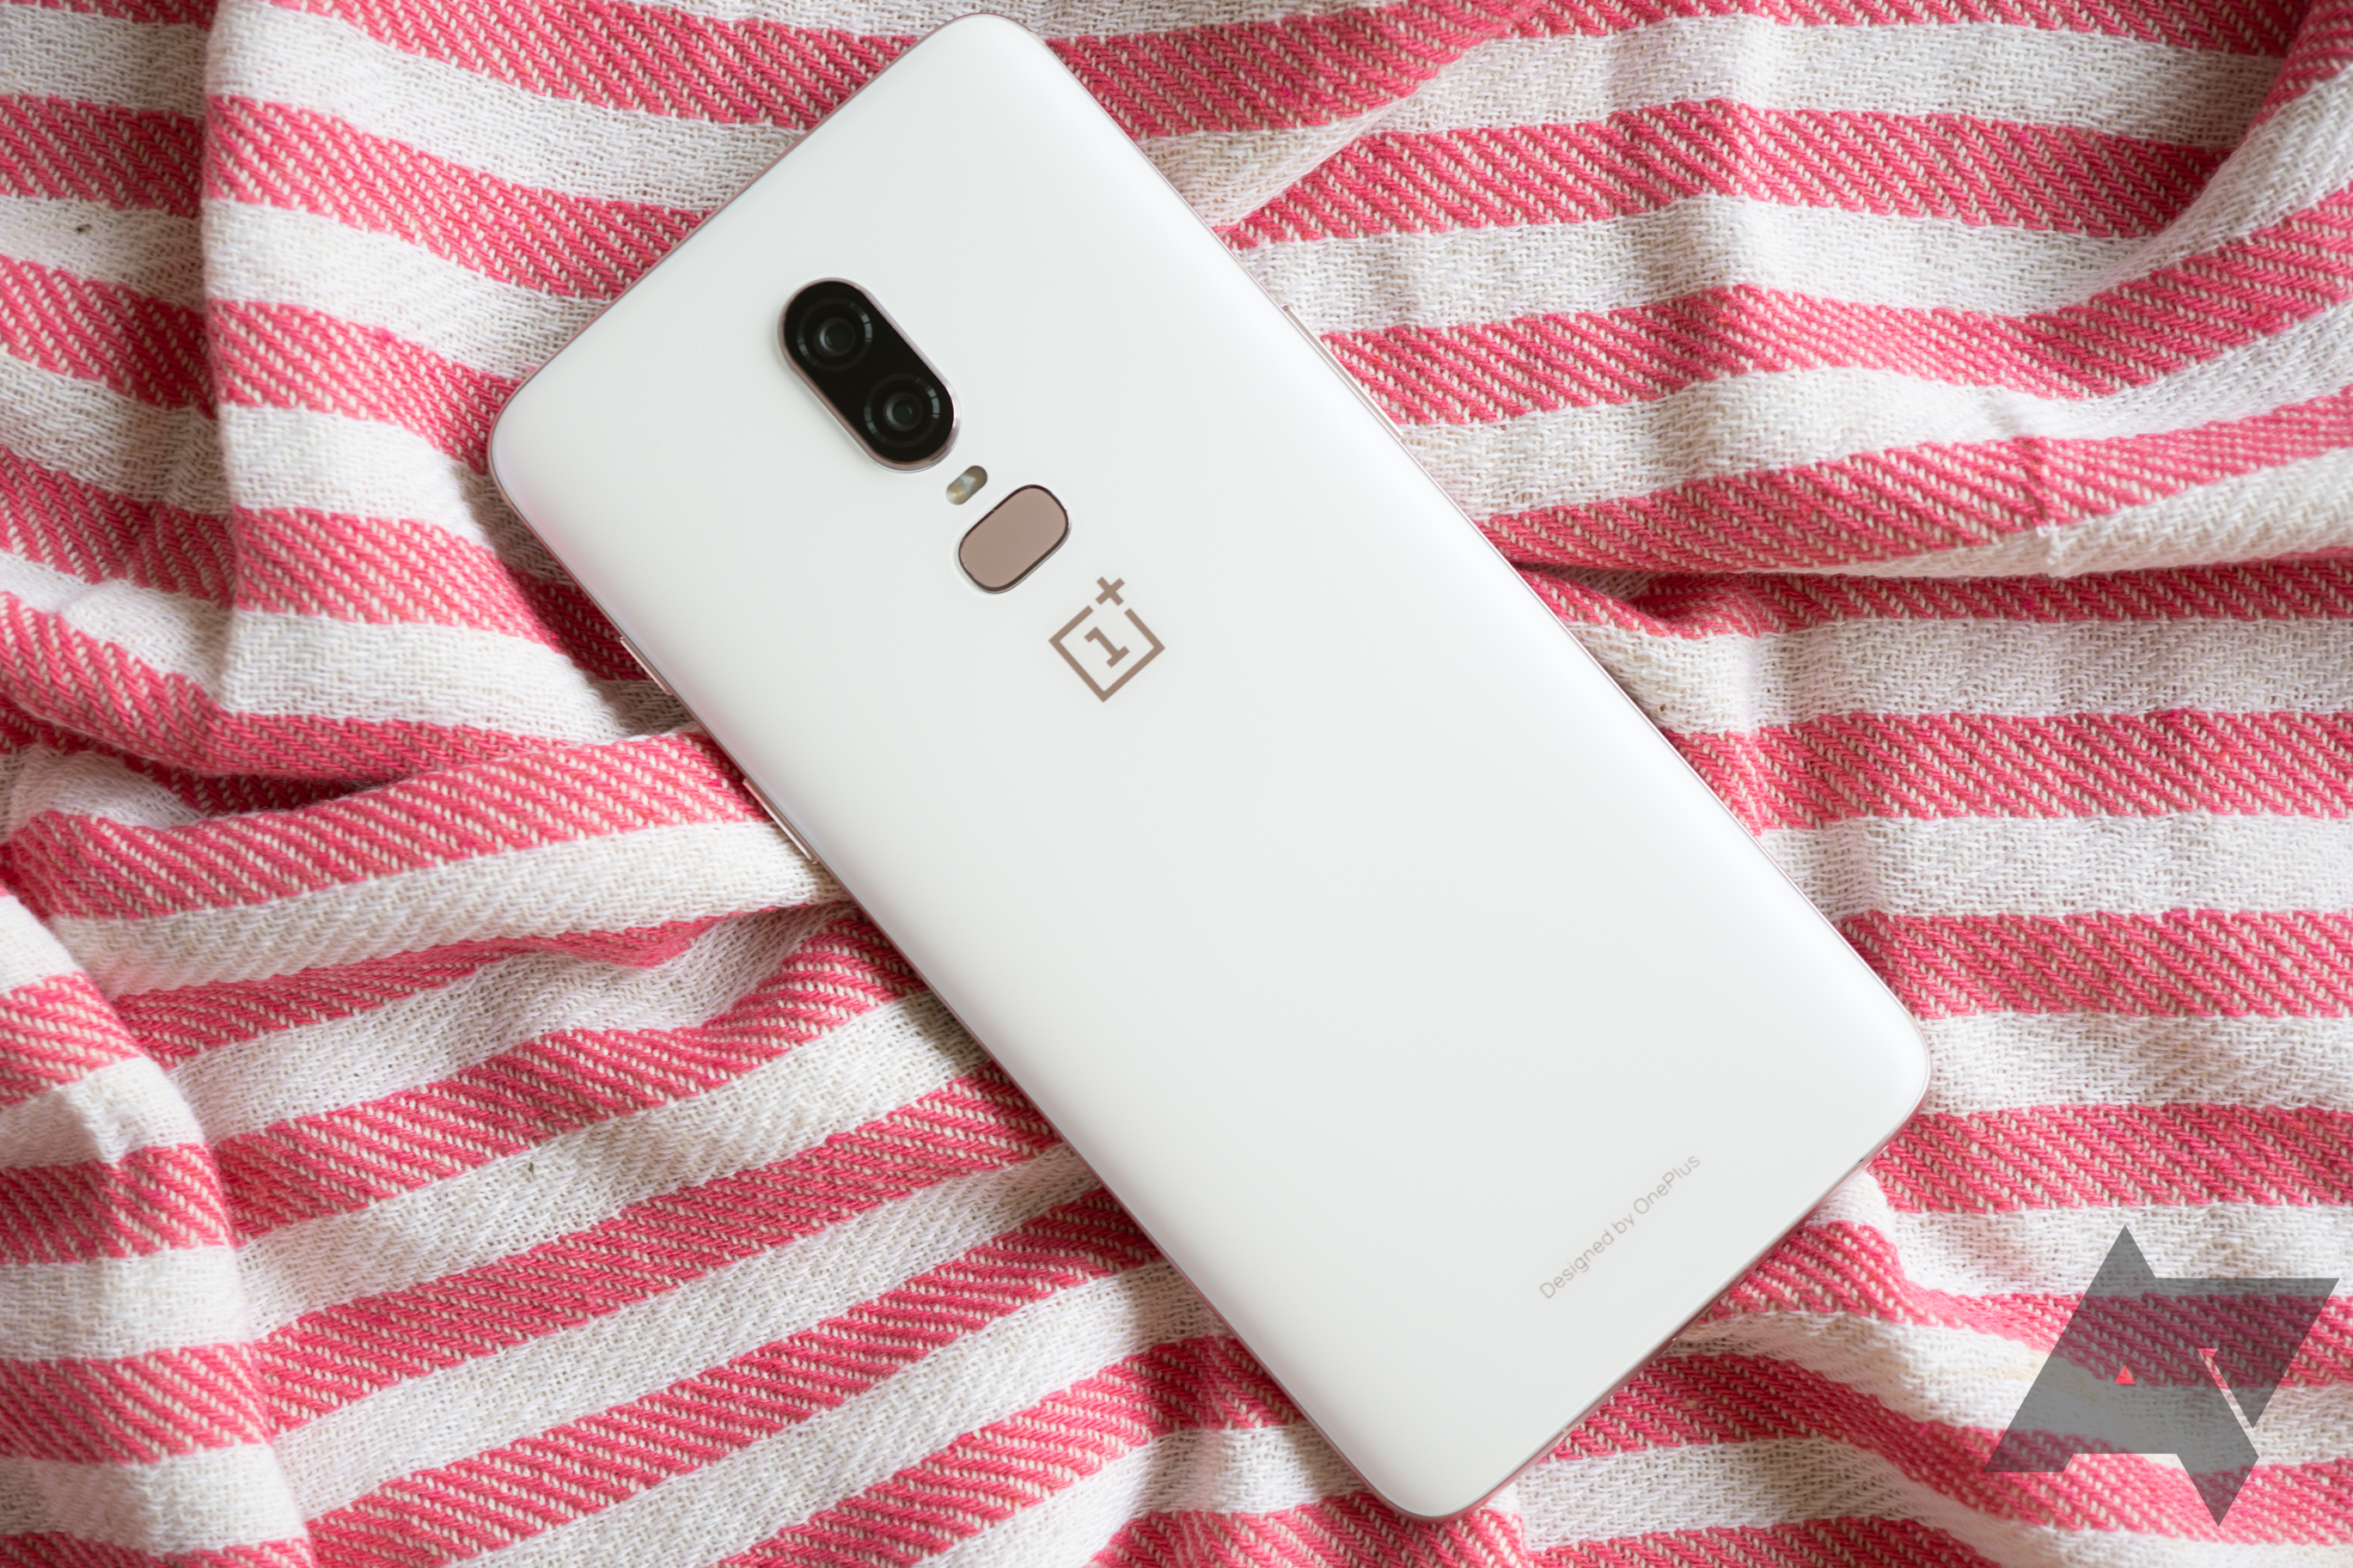 OnePlus 6 Silk White edition goes on sale in India